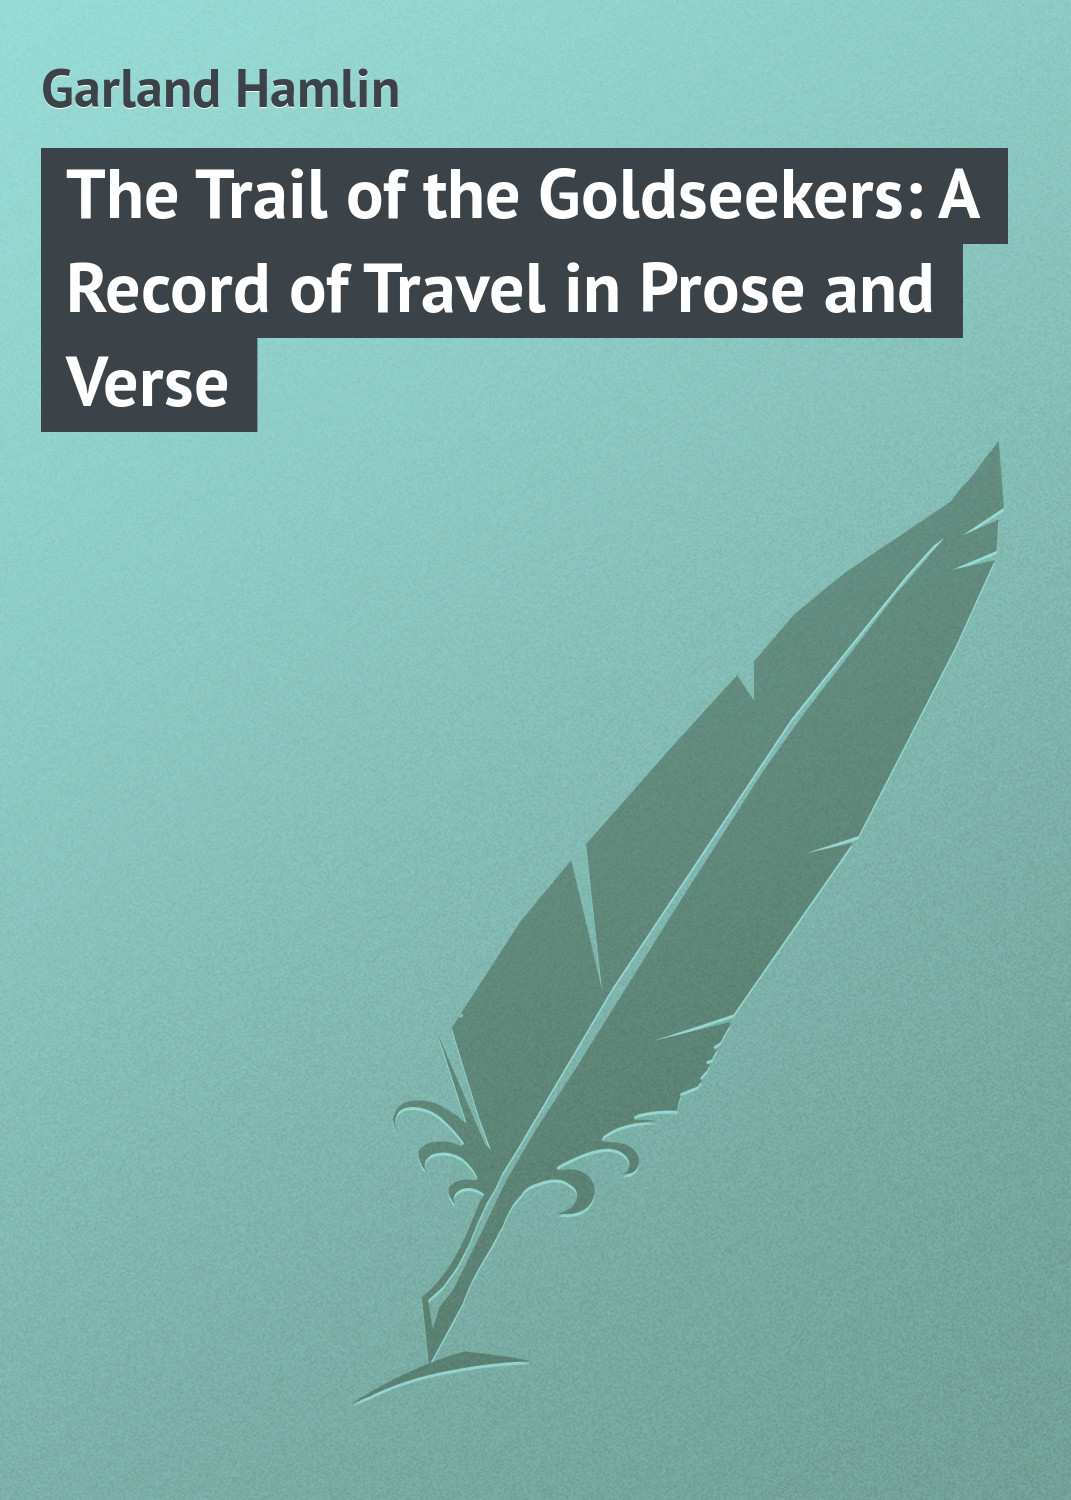 Garland Hamlin The Trail of the Goldseekers: A Record of Travel in Prose and Verse ralph compton ride the hard trail